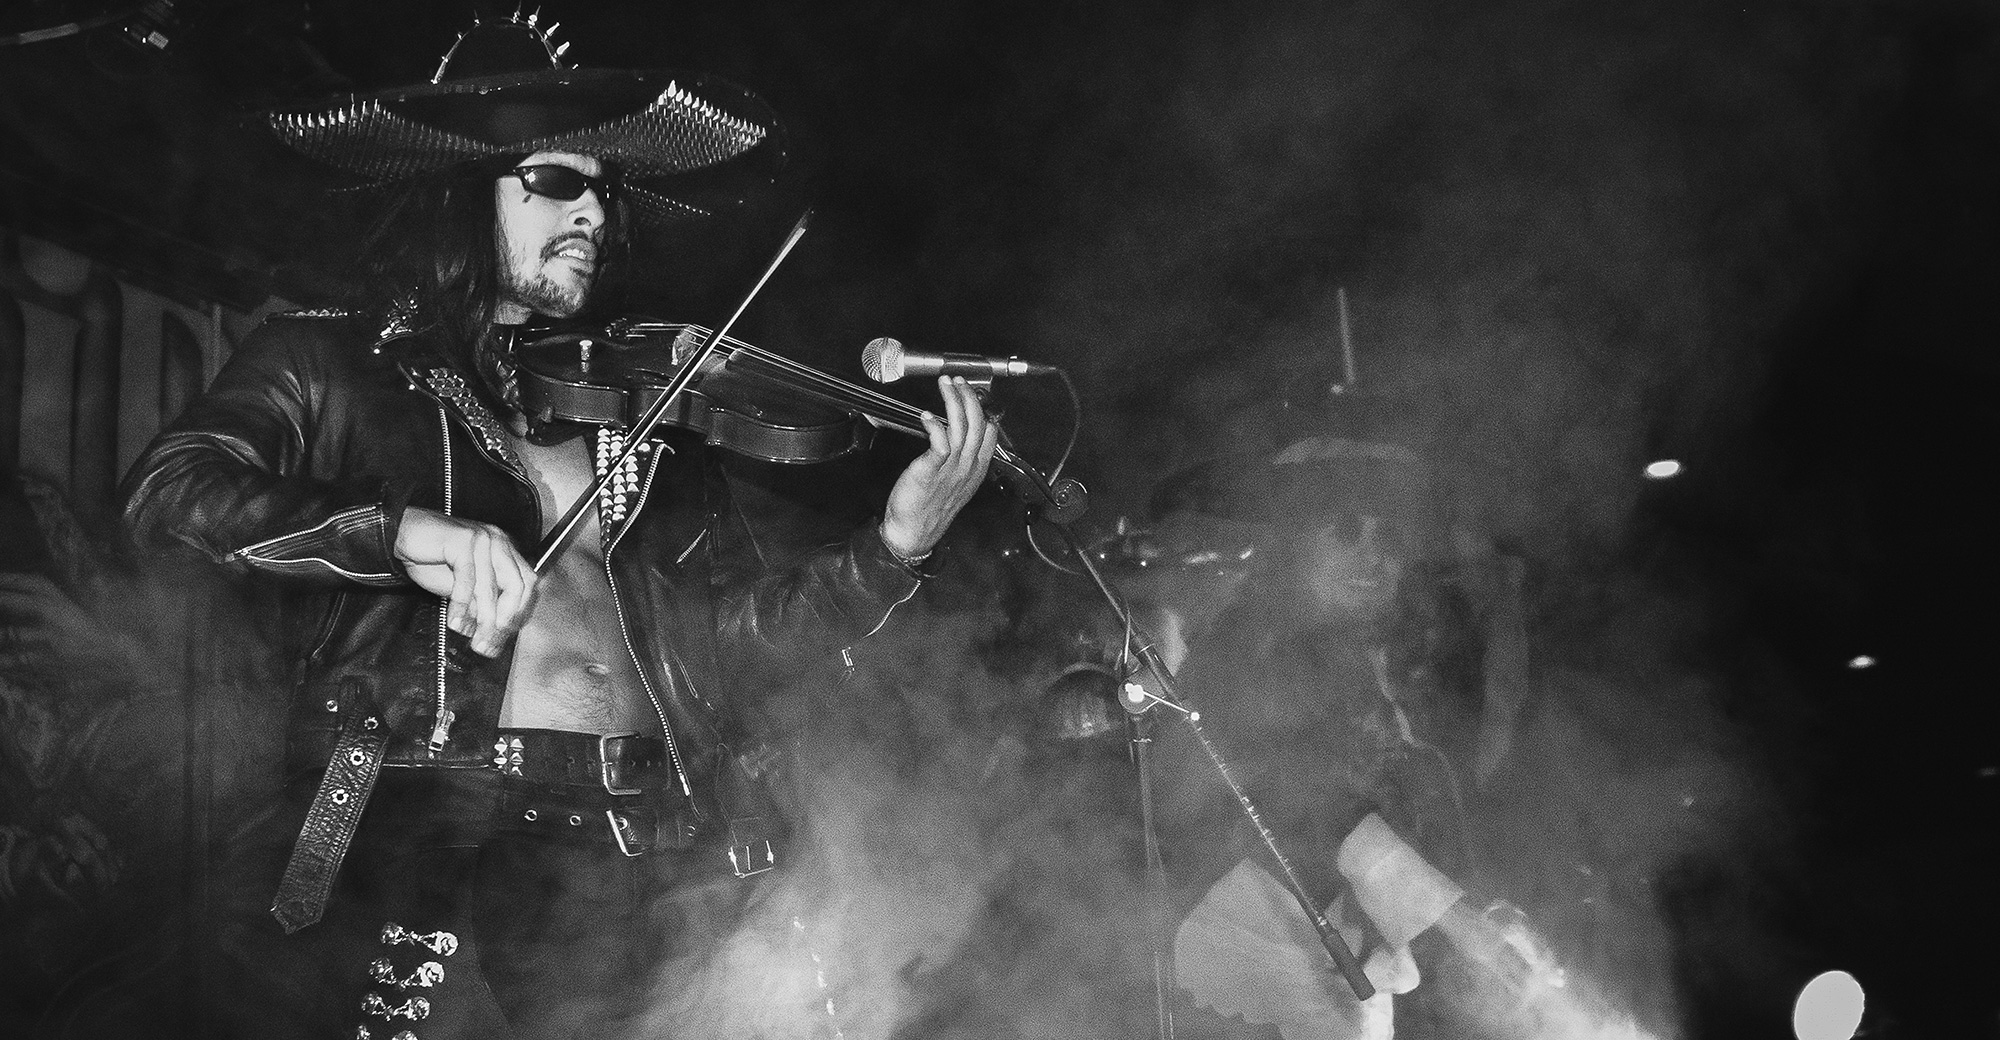 Metalachi performs at Santa Fe Sol